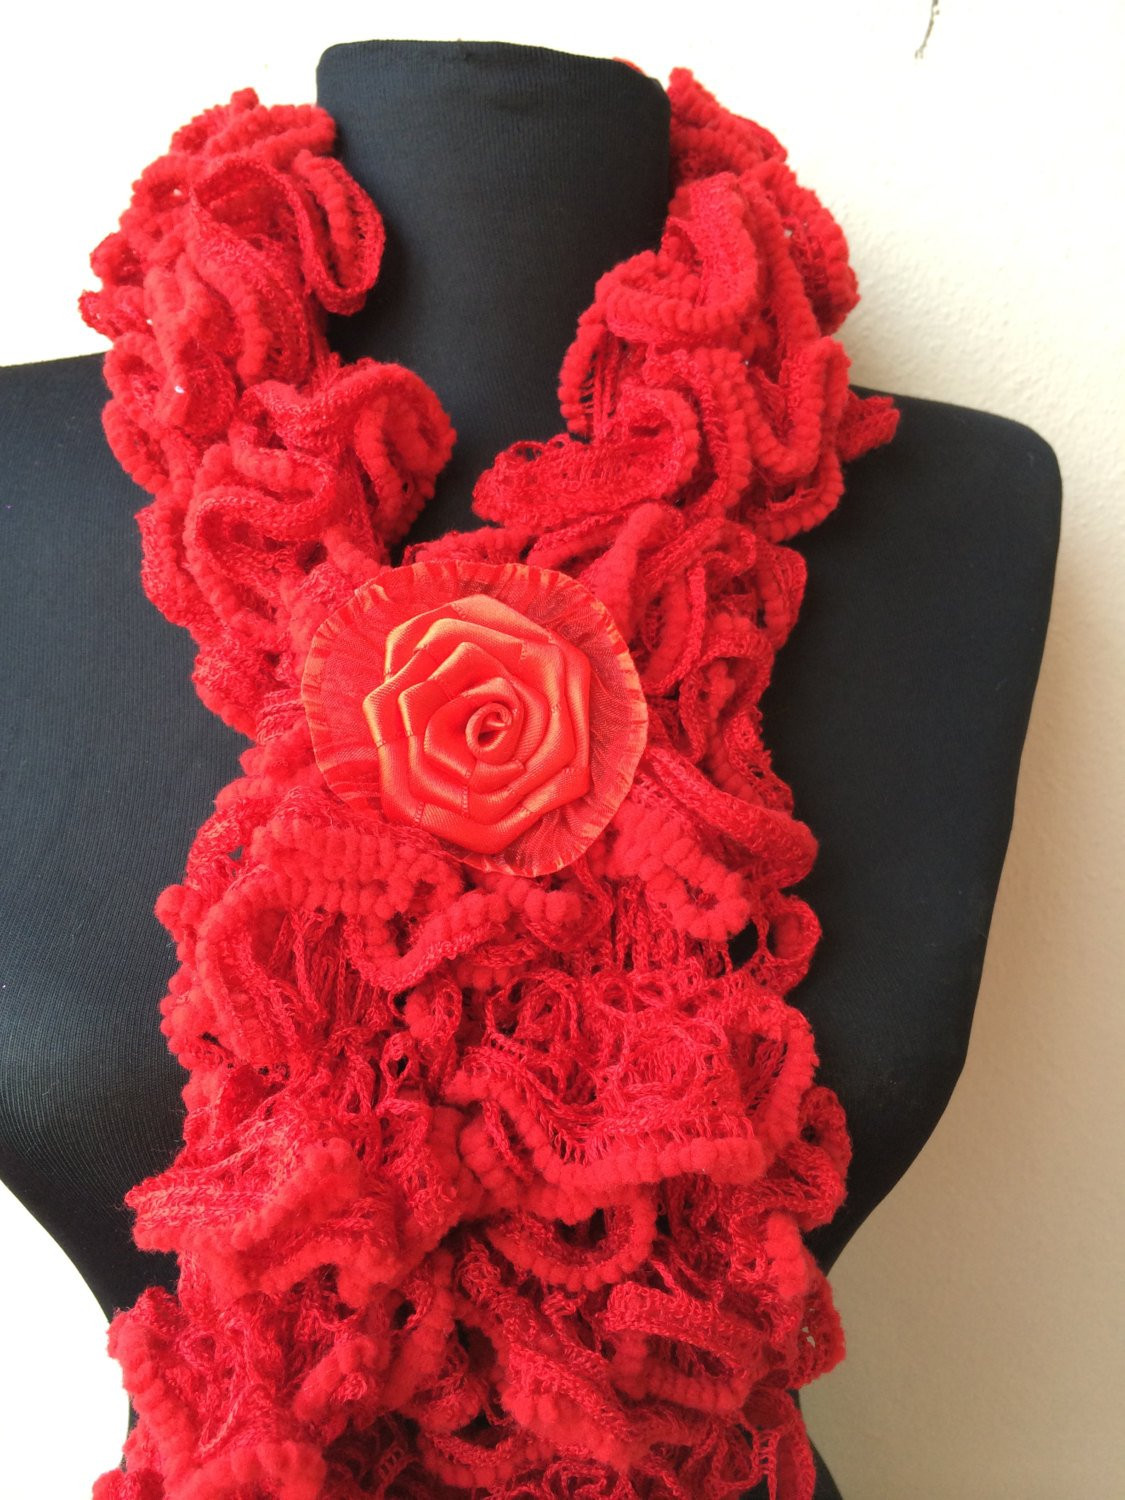 Best Of Red Ruffle Hand Knit Scarf Girls and Woman Knit Wrap Scarlet Knit Ruffle Scarf Of Marvelous 50 Pics Knit Ruffle Scarf